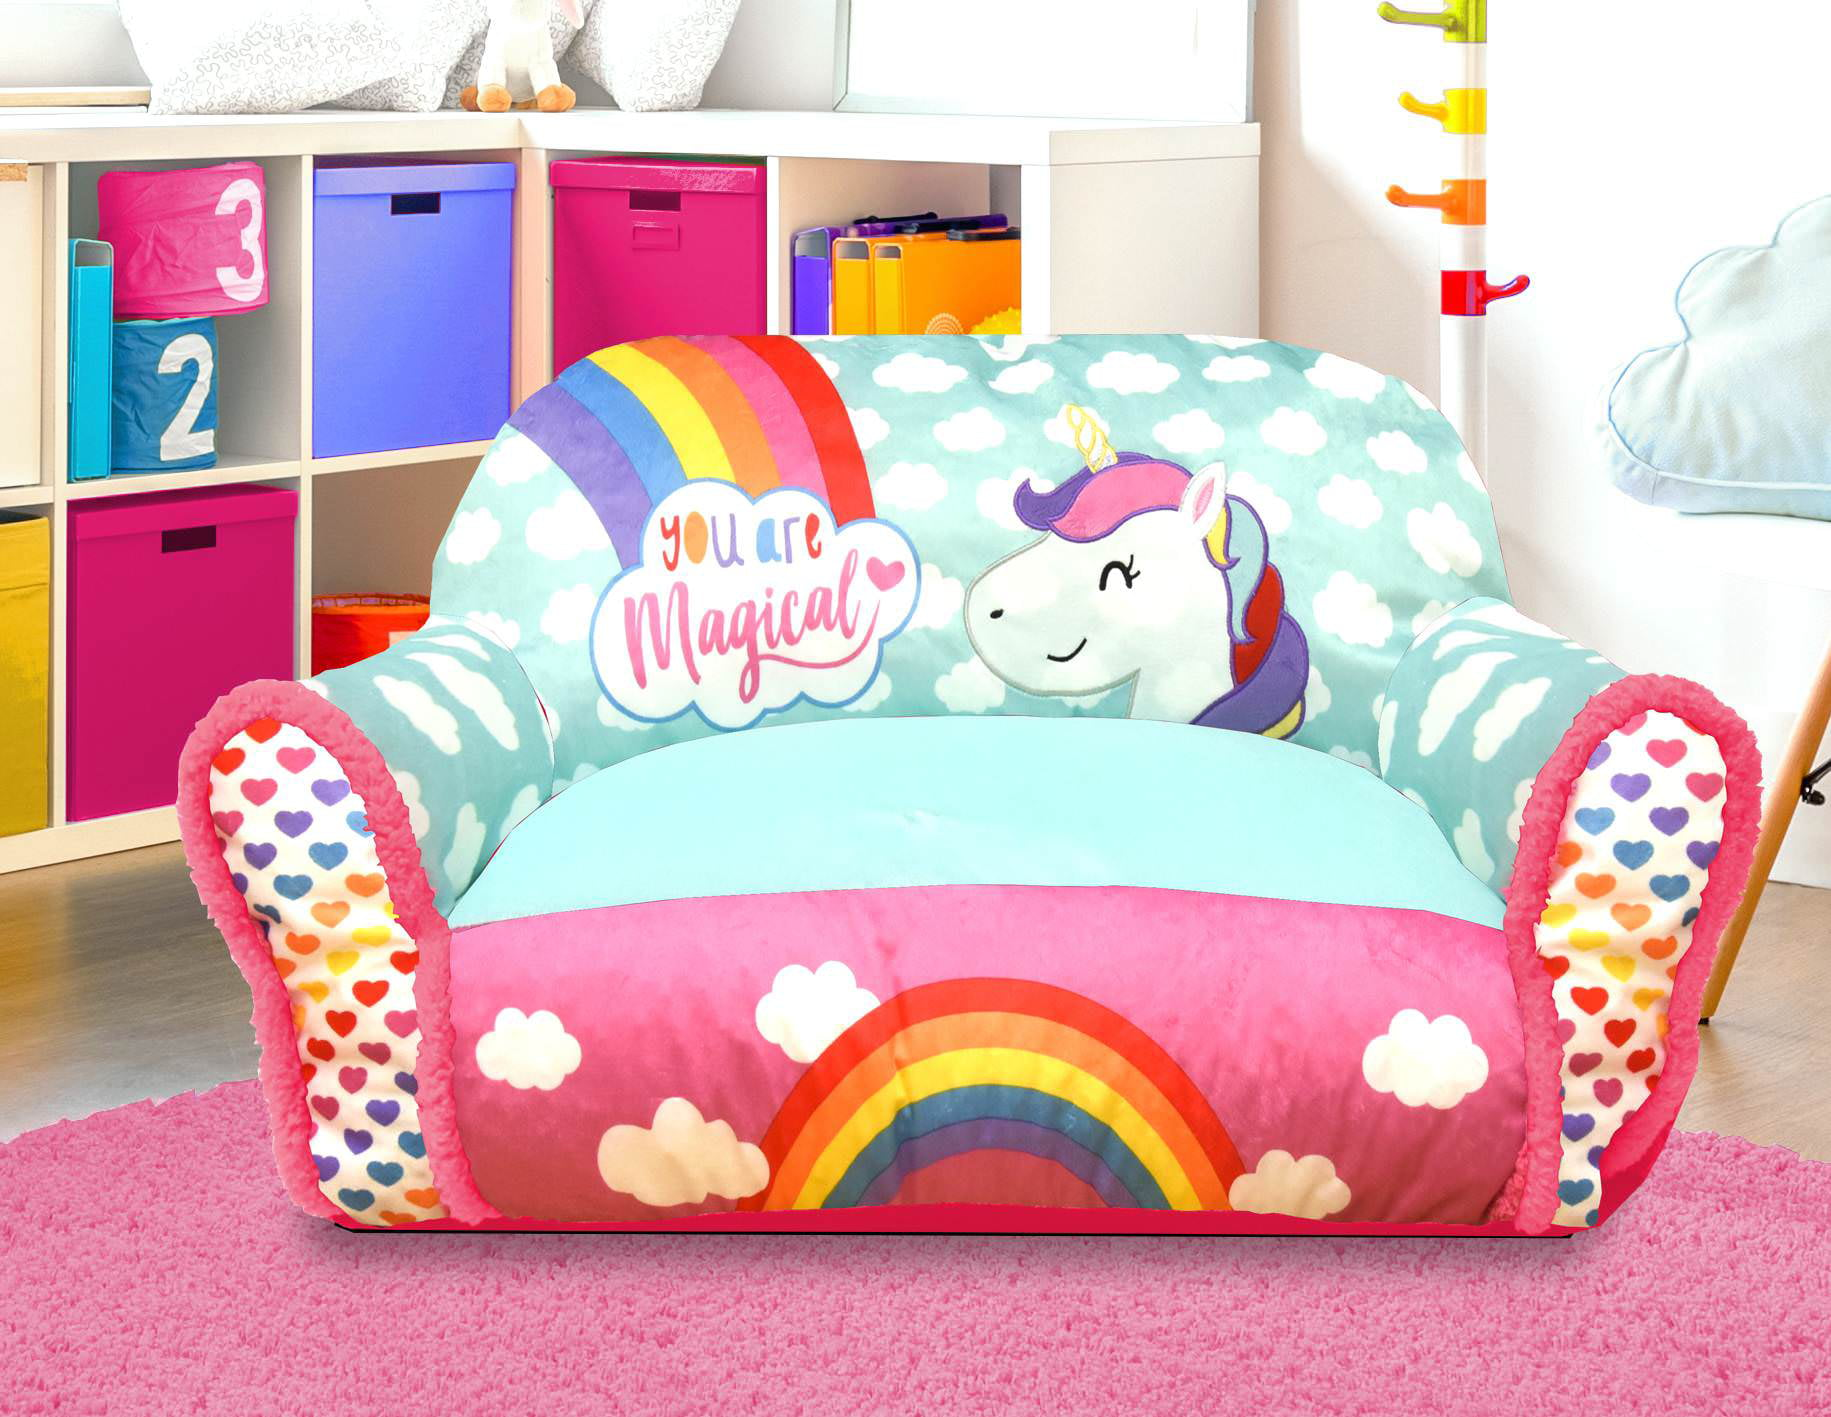 Fine Unicorn Bean Bag Sofa Chair Walmart Inventory Checker Pabps2019 Chair Design Images Pabps2019Com